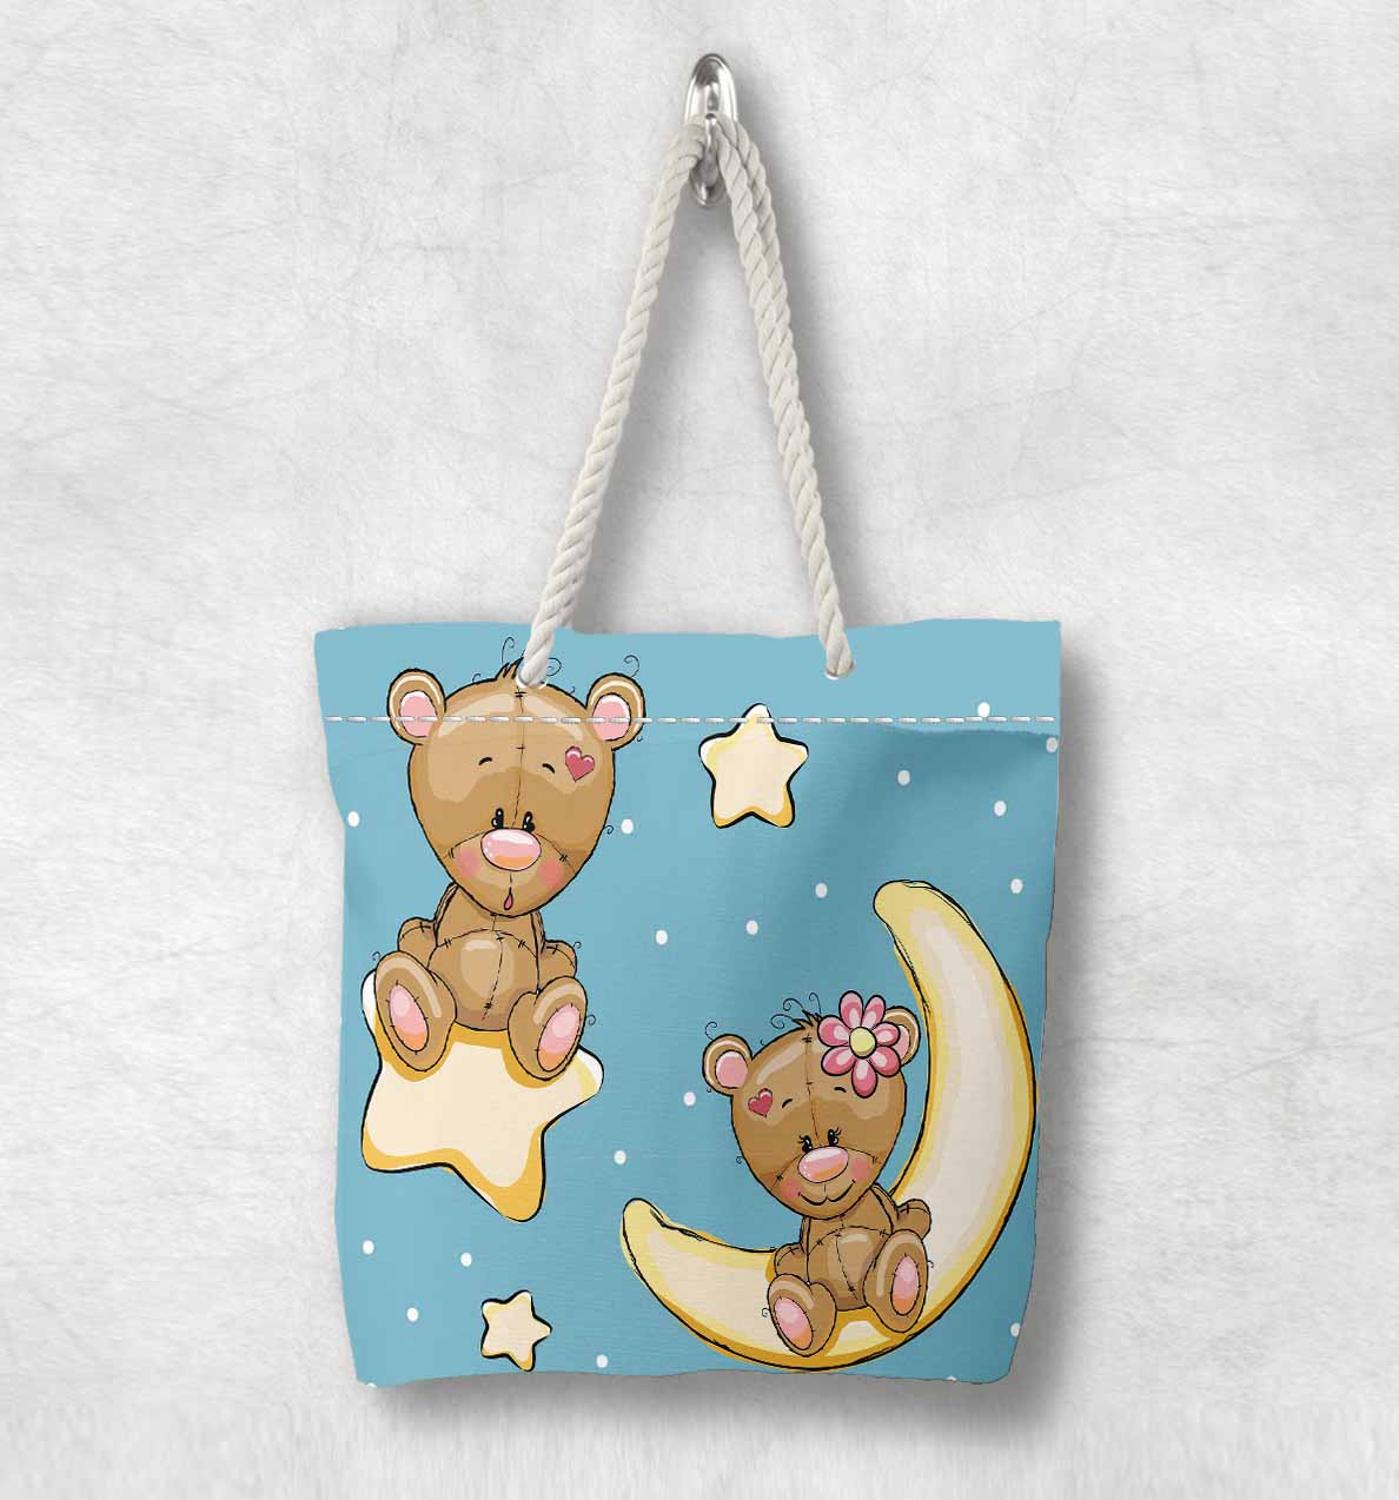 Else Blue Sky Yellow Stars Moon Funny Bears Fashion White Rope Handle Canvas Bag  Cartoon Print Zippered Tote Bag Shoulder Bag